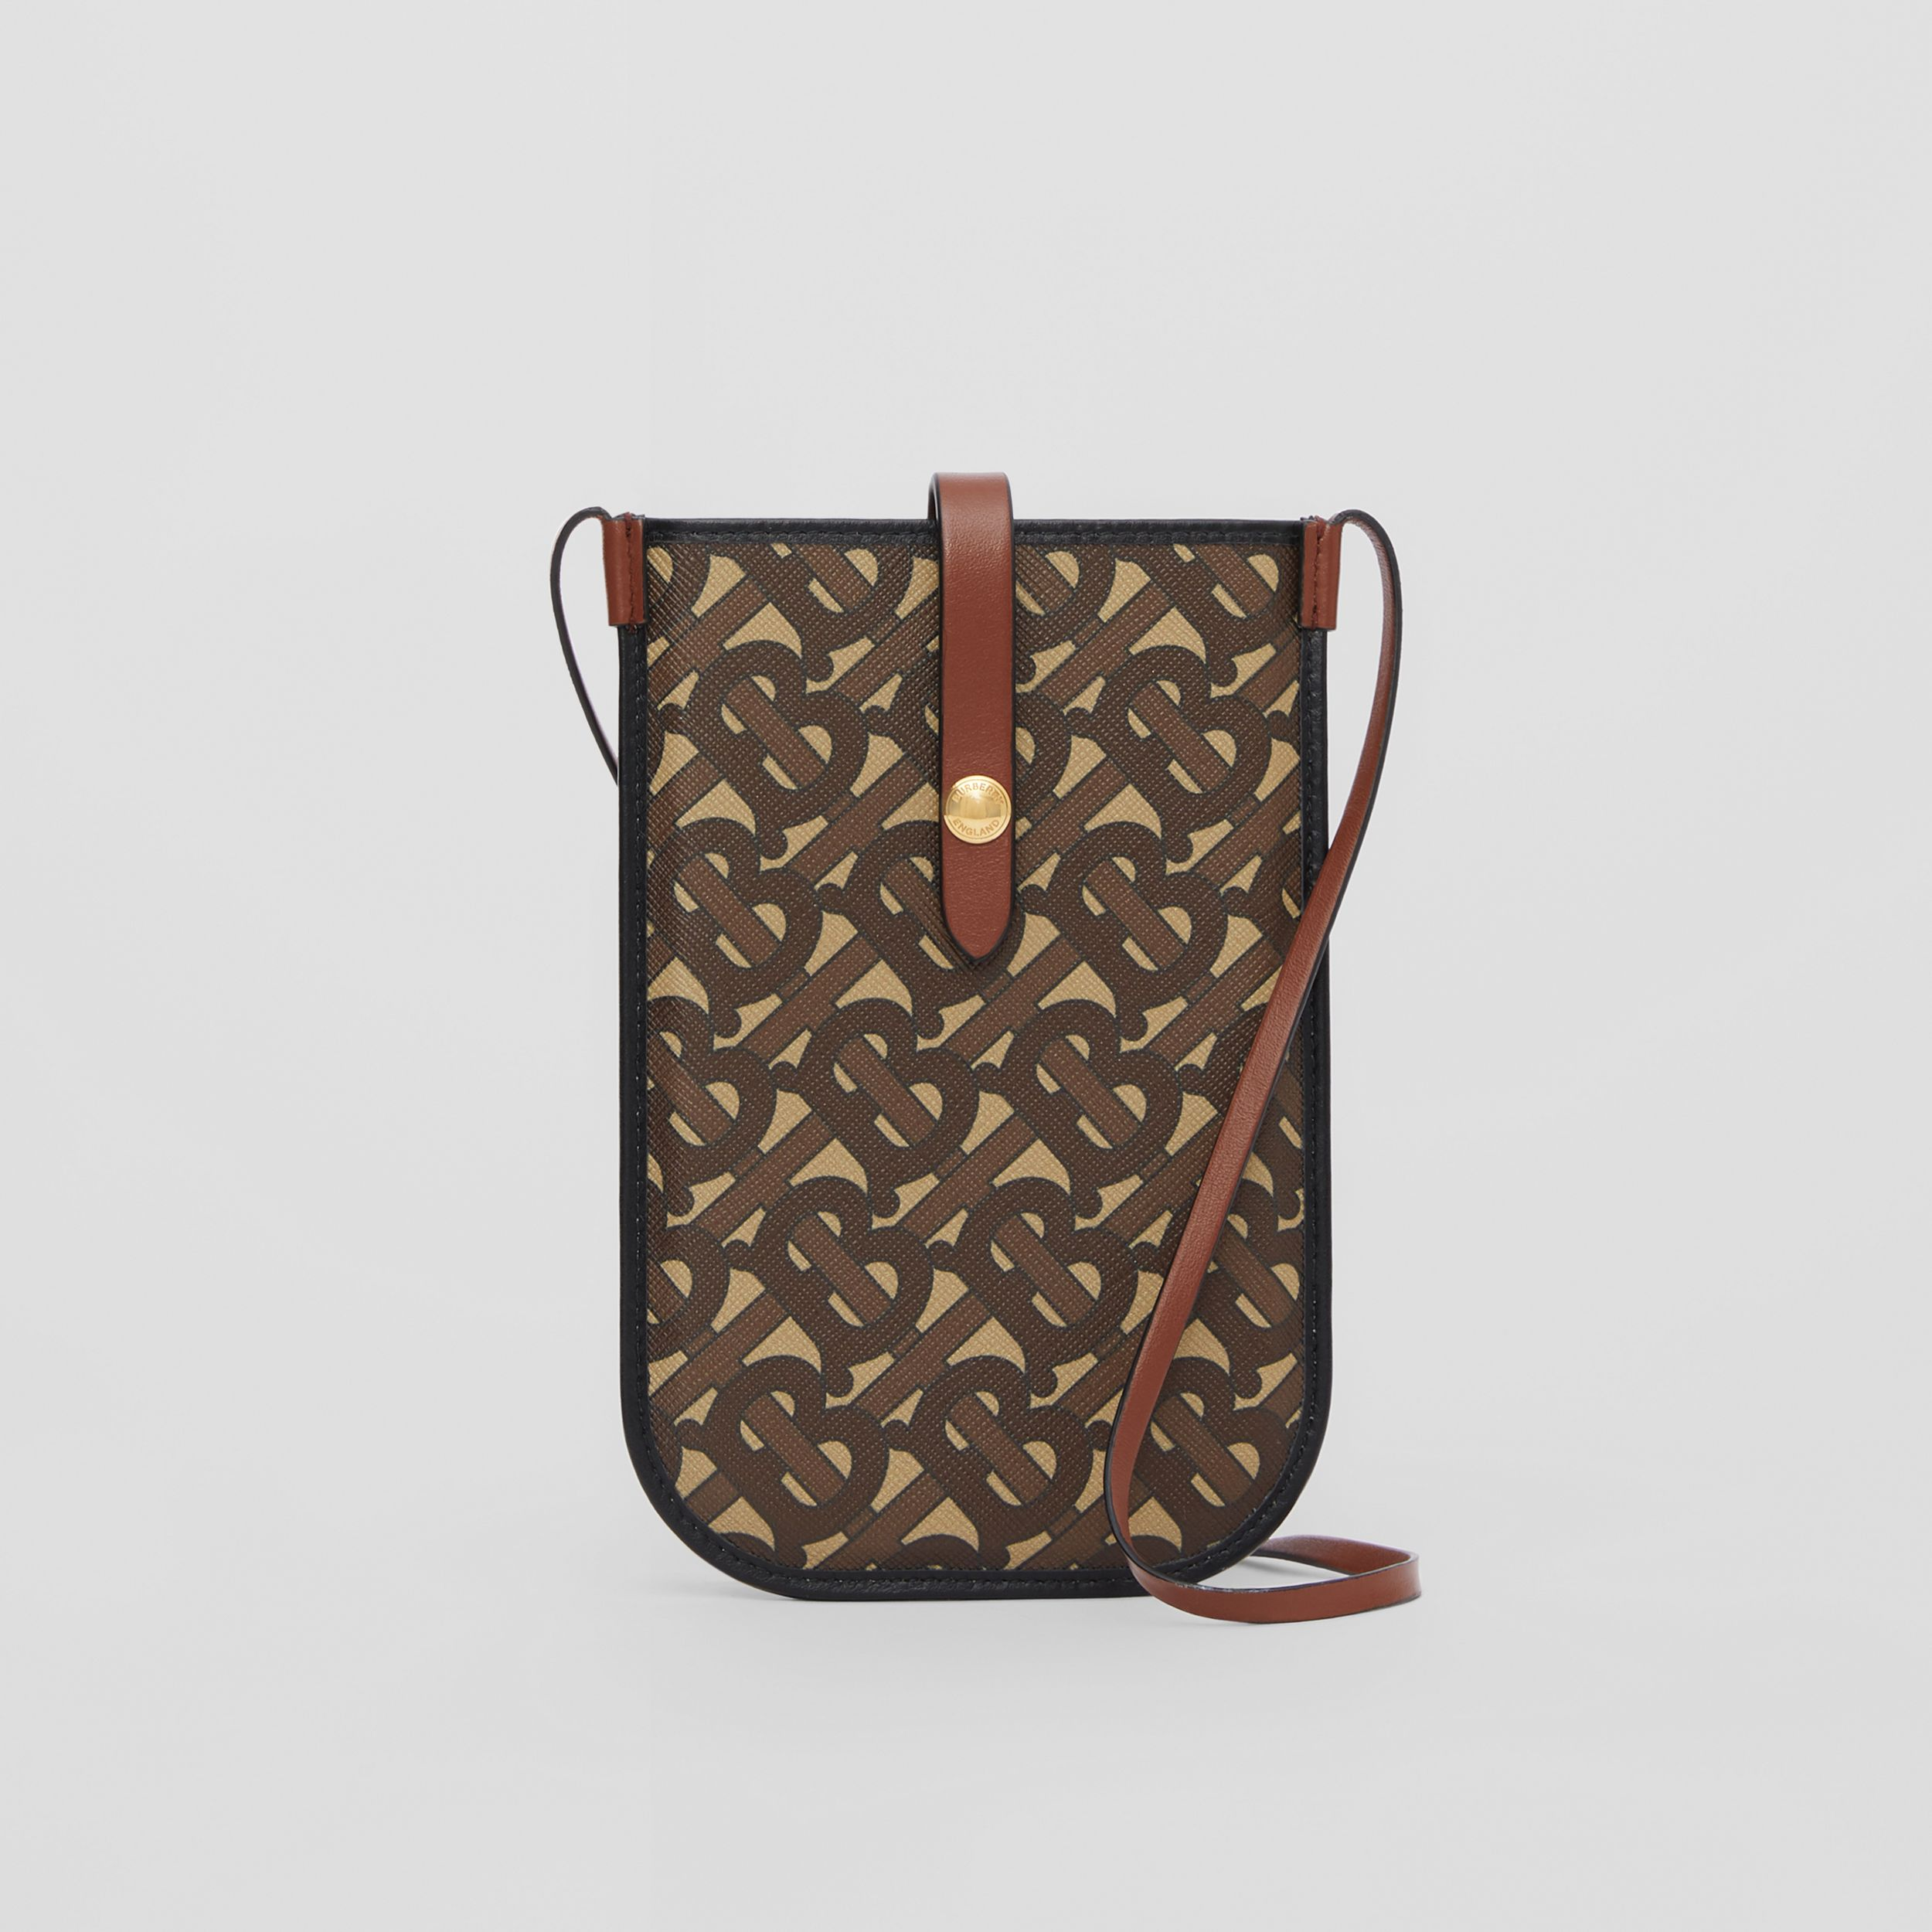 Monogram Print E-canvas Phone Case with Strap in Bridle Brown | Burberry - 1